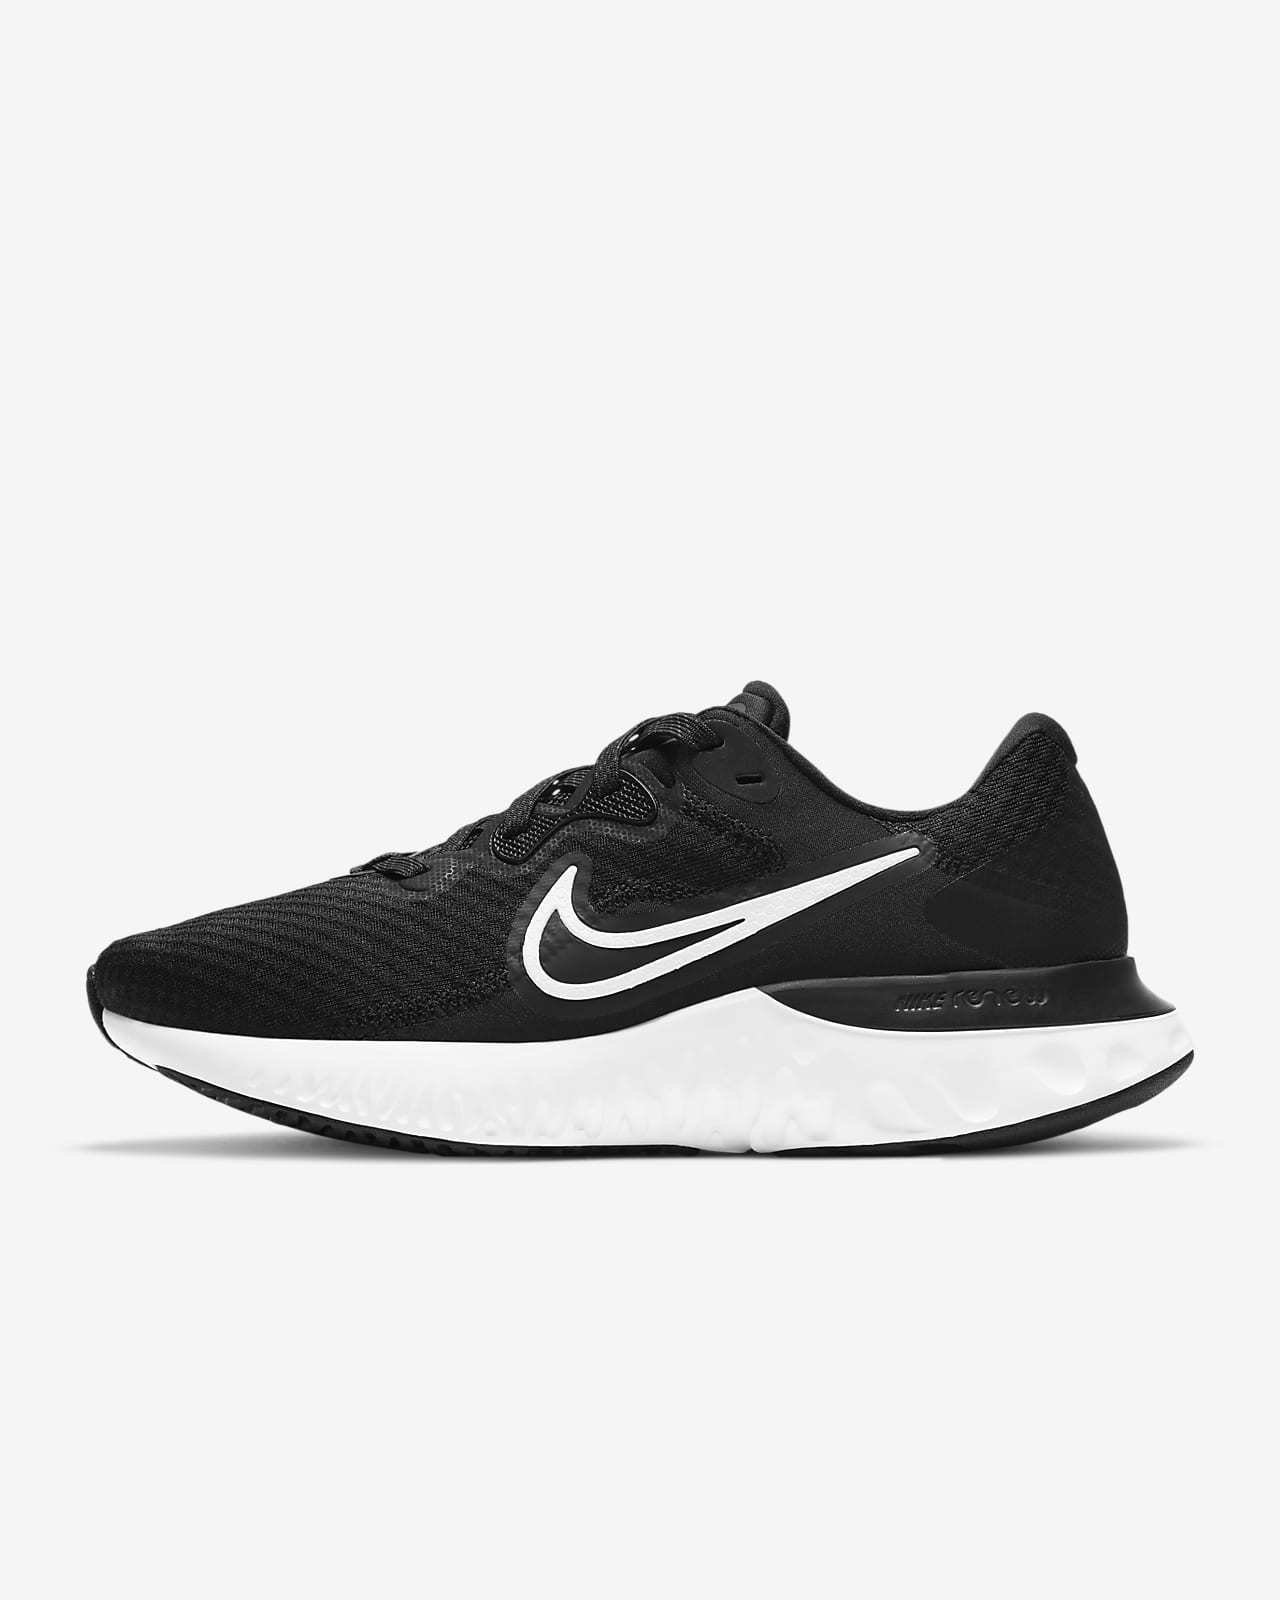 Nike Renew Run 2 Women's Running Shoe